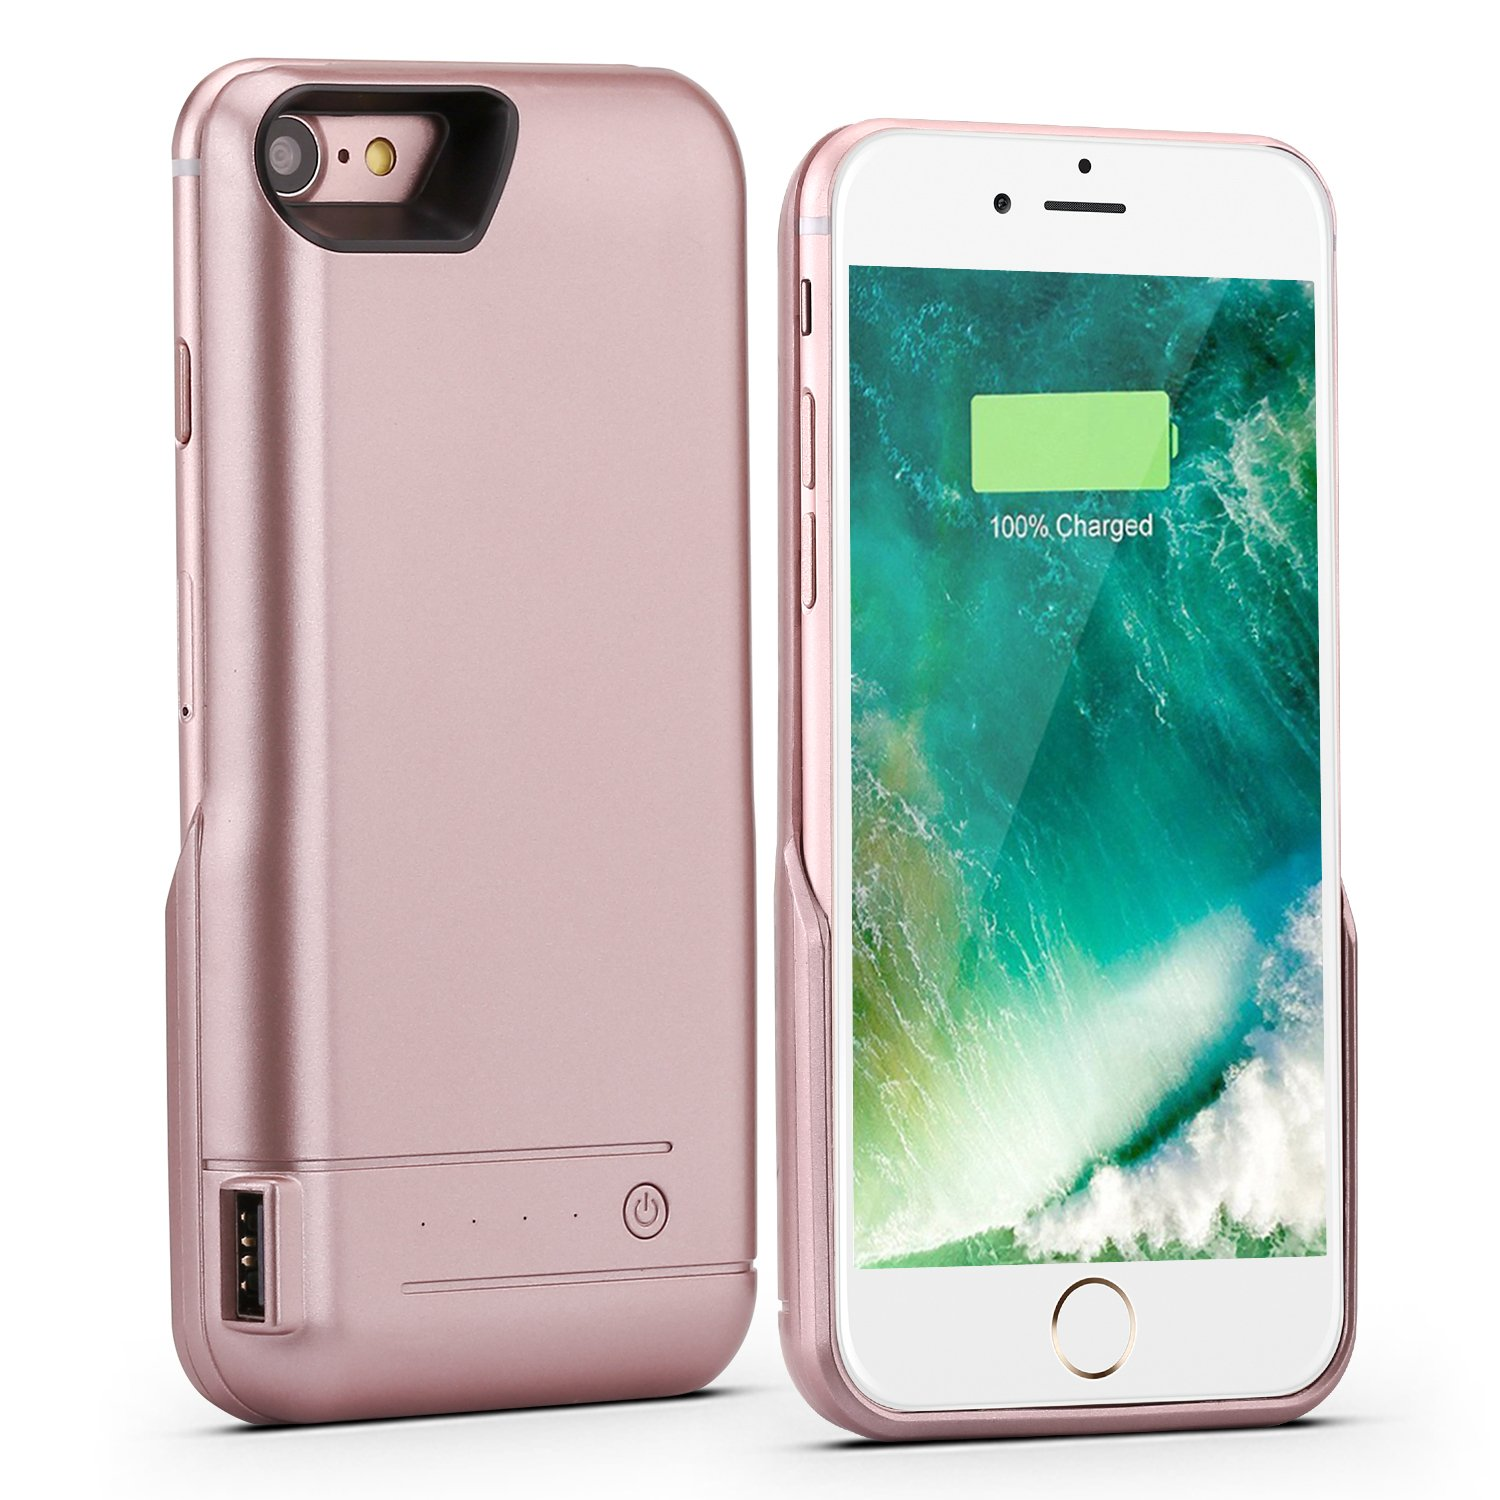 powerful 5800mah portable charger power bank for iphone 7 battery slim case 606157513037 ebay. Black Bedroom Furniture Sets. Home Design Ideas